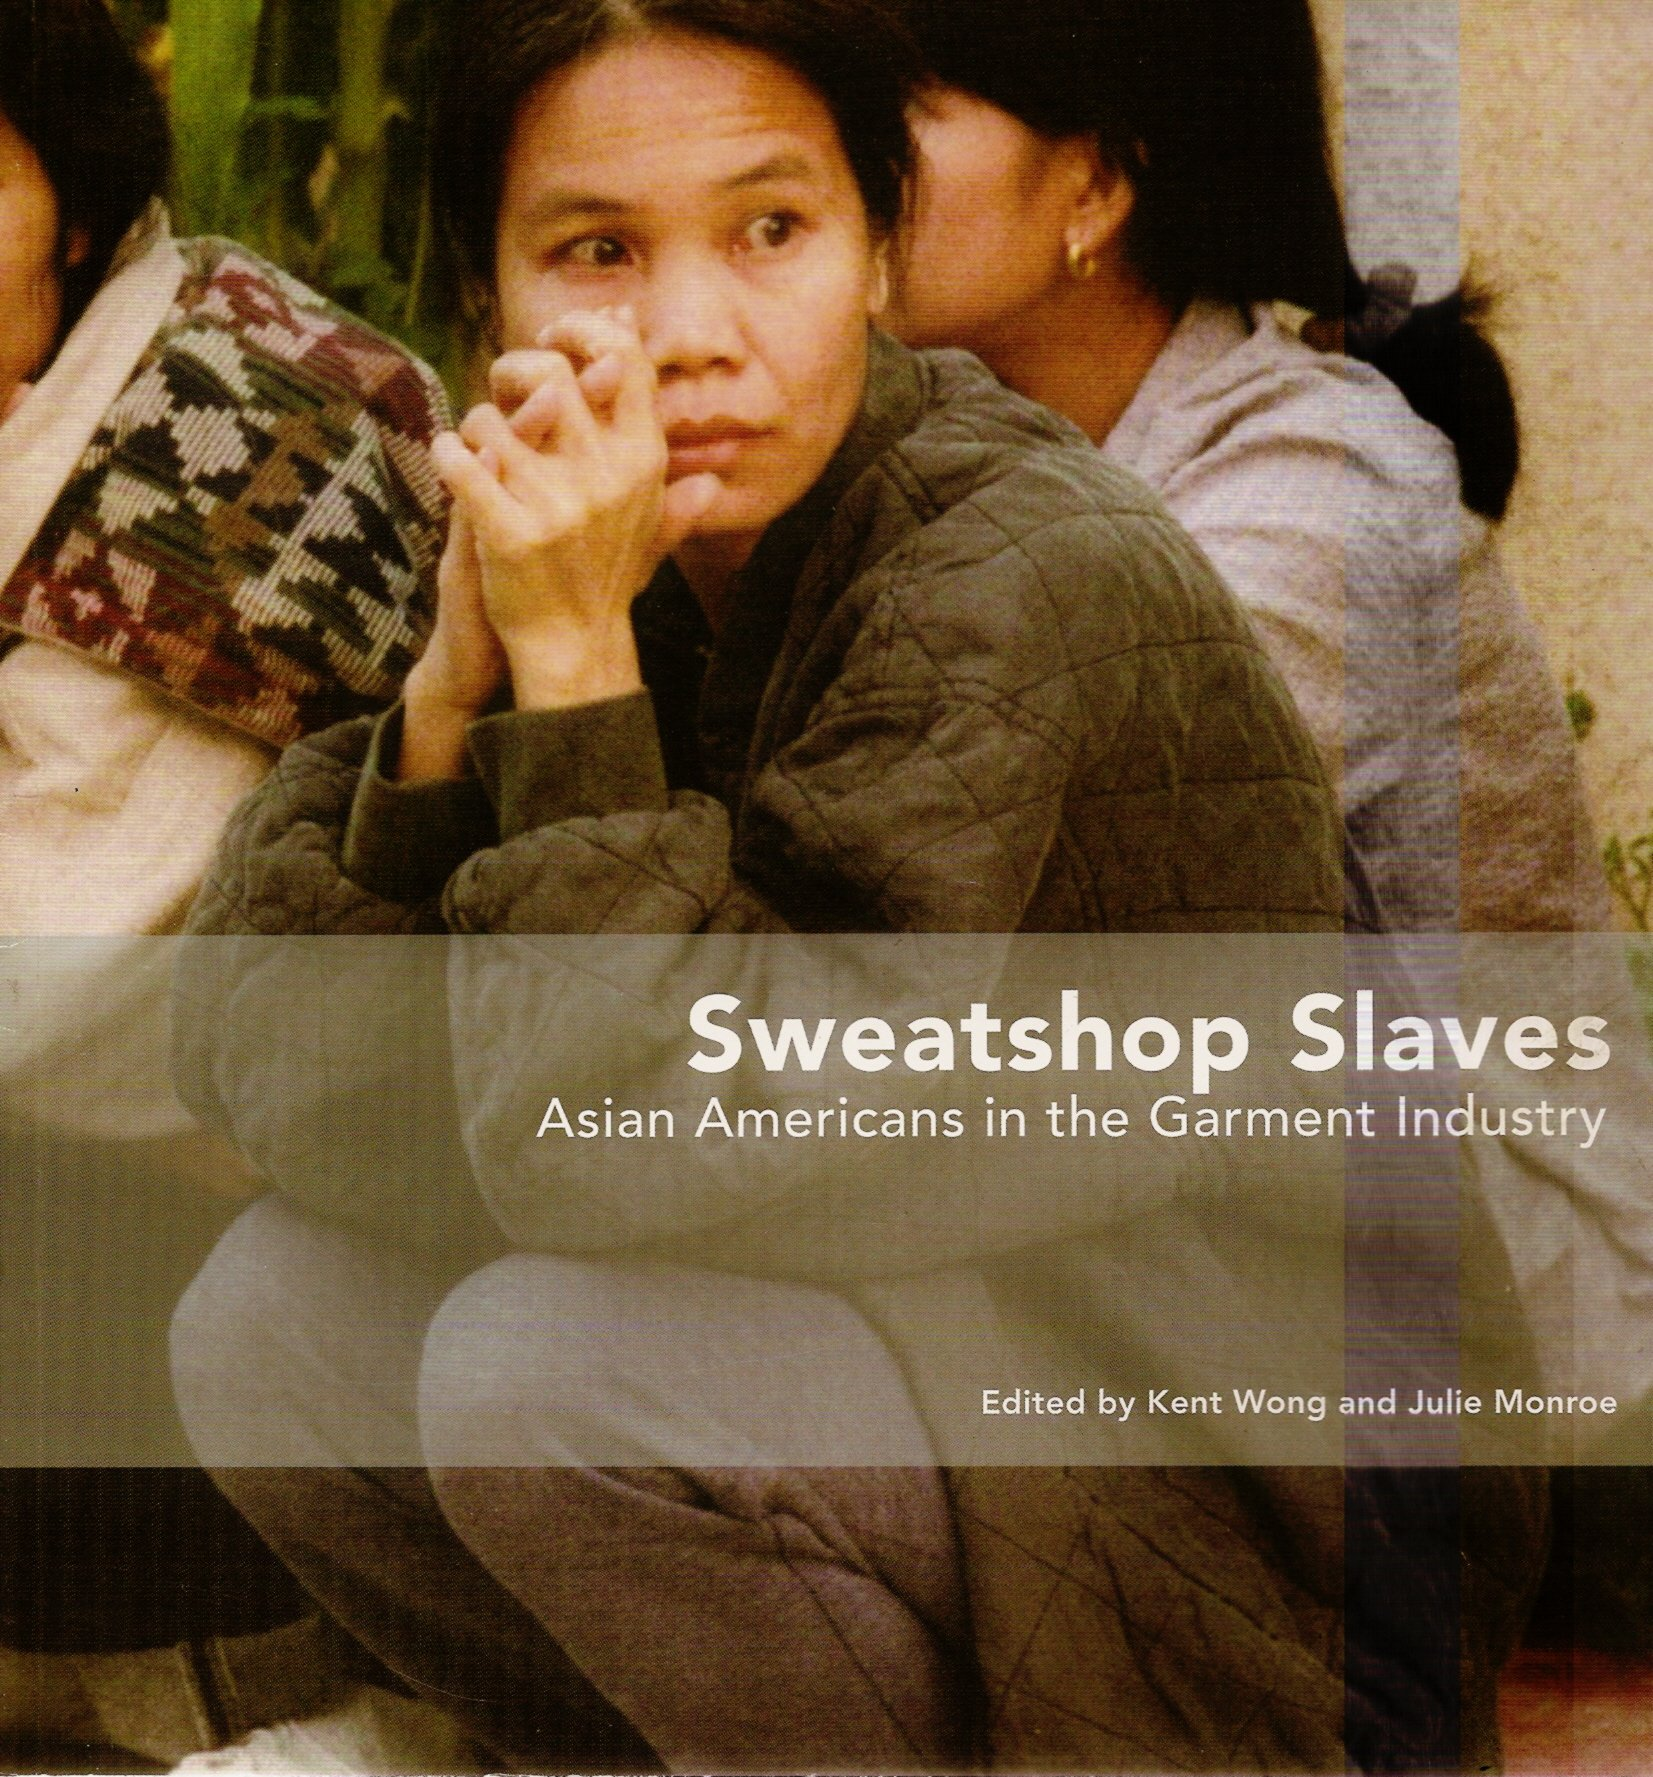 Read Online Sweatshop Slaves 2006 Asian Americans in the Garment Industry ebook